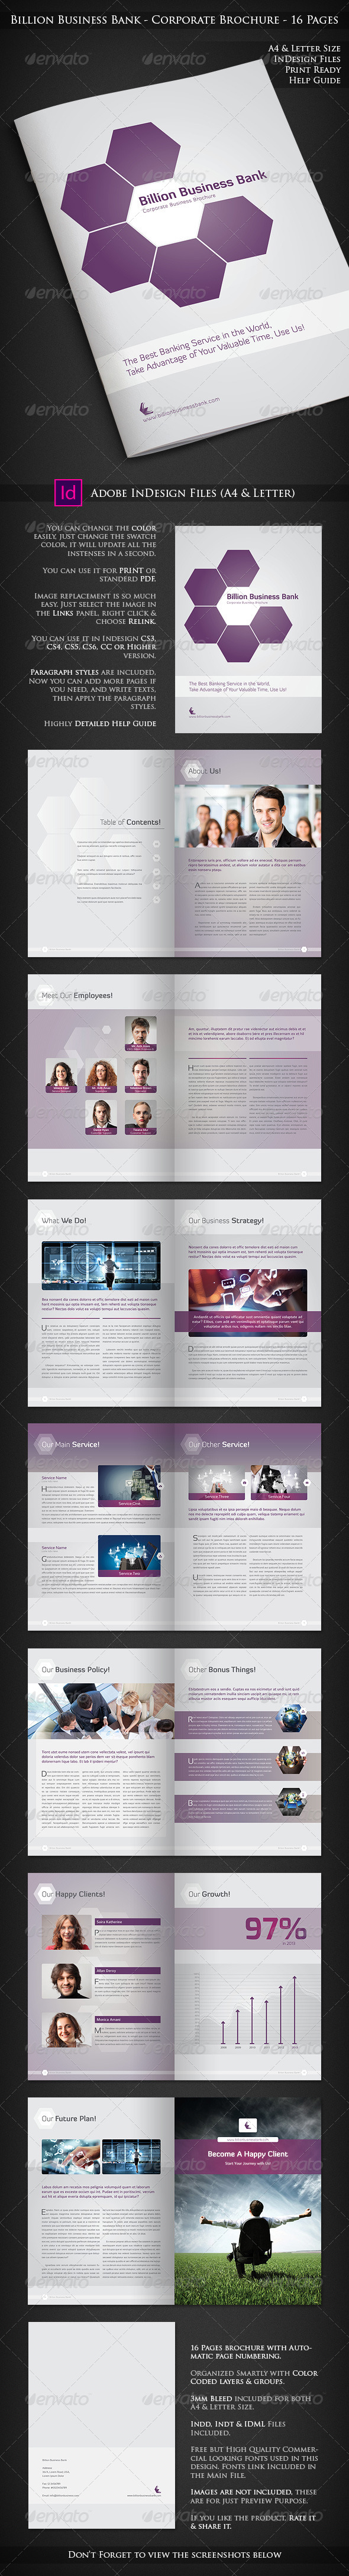 GraphicRiver Billion Business Bank 16 Pages Brochure 7700628